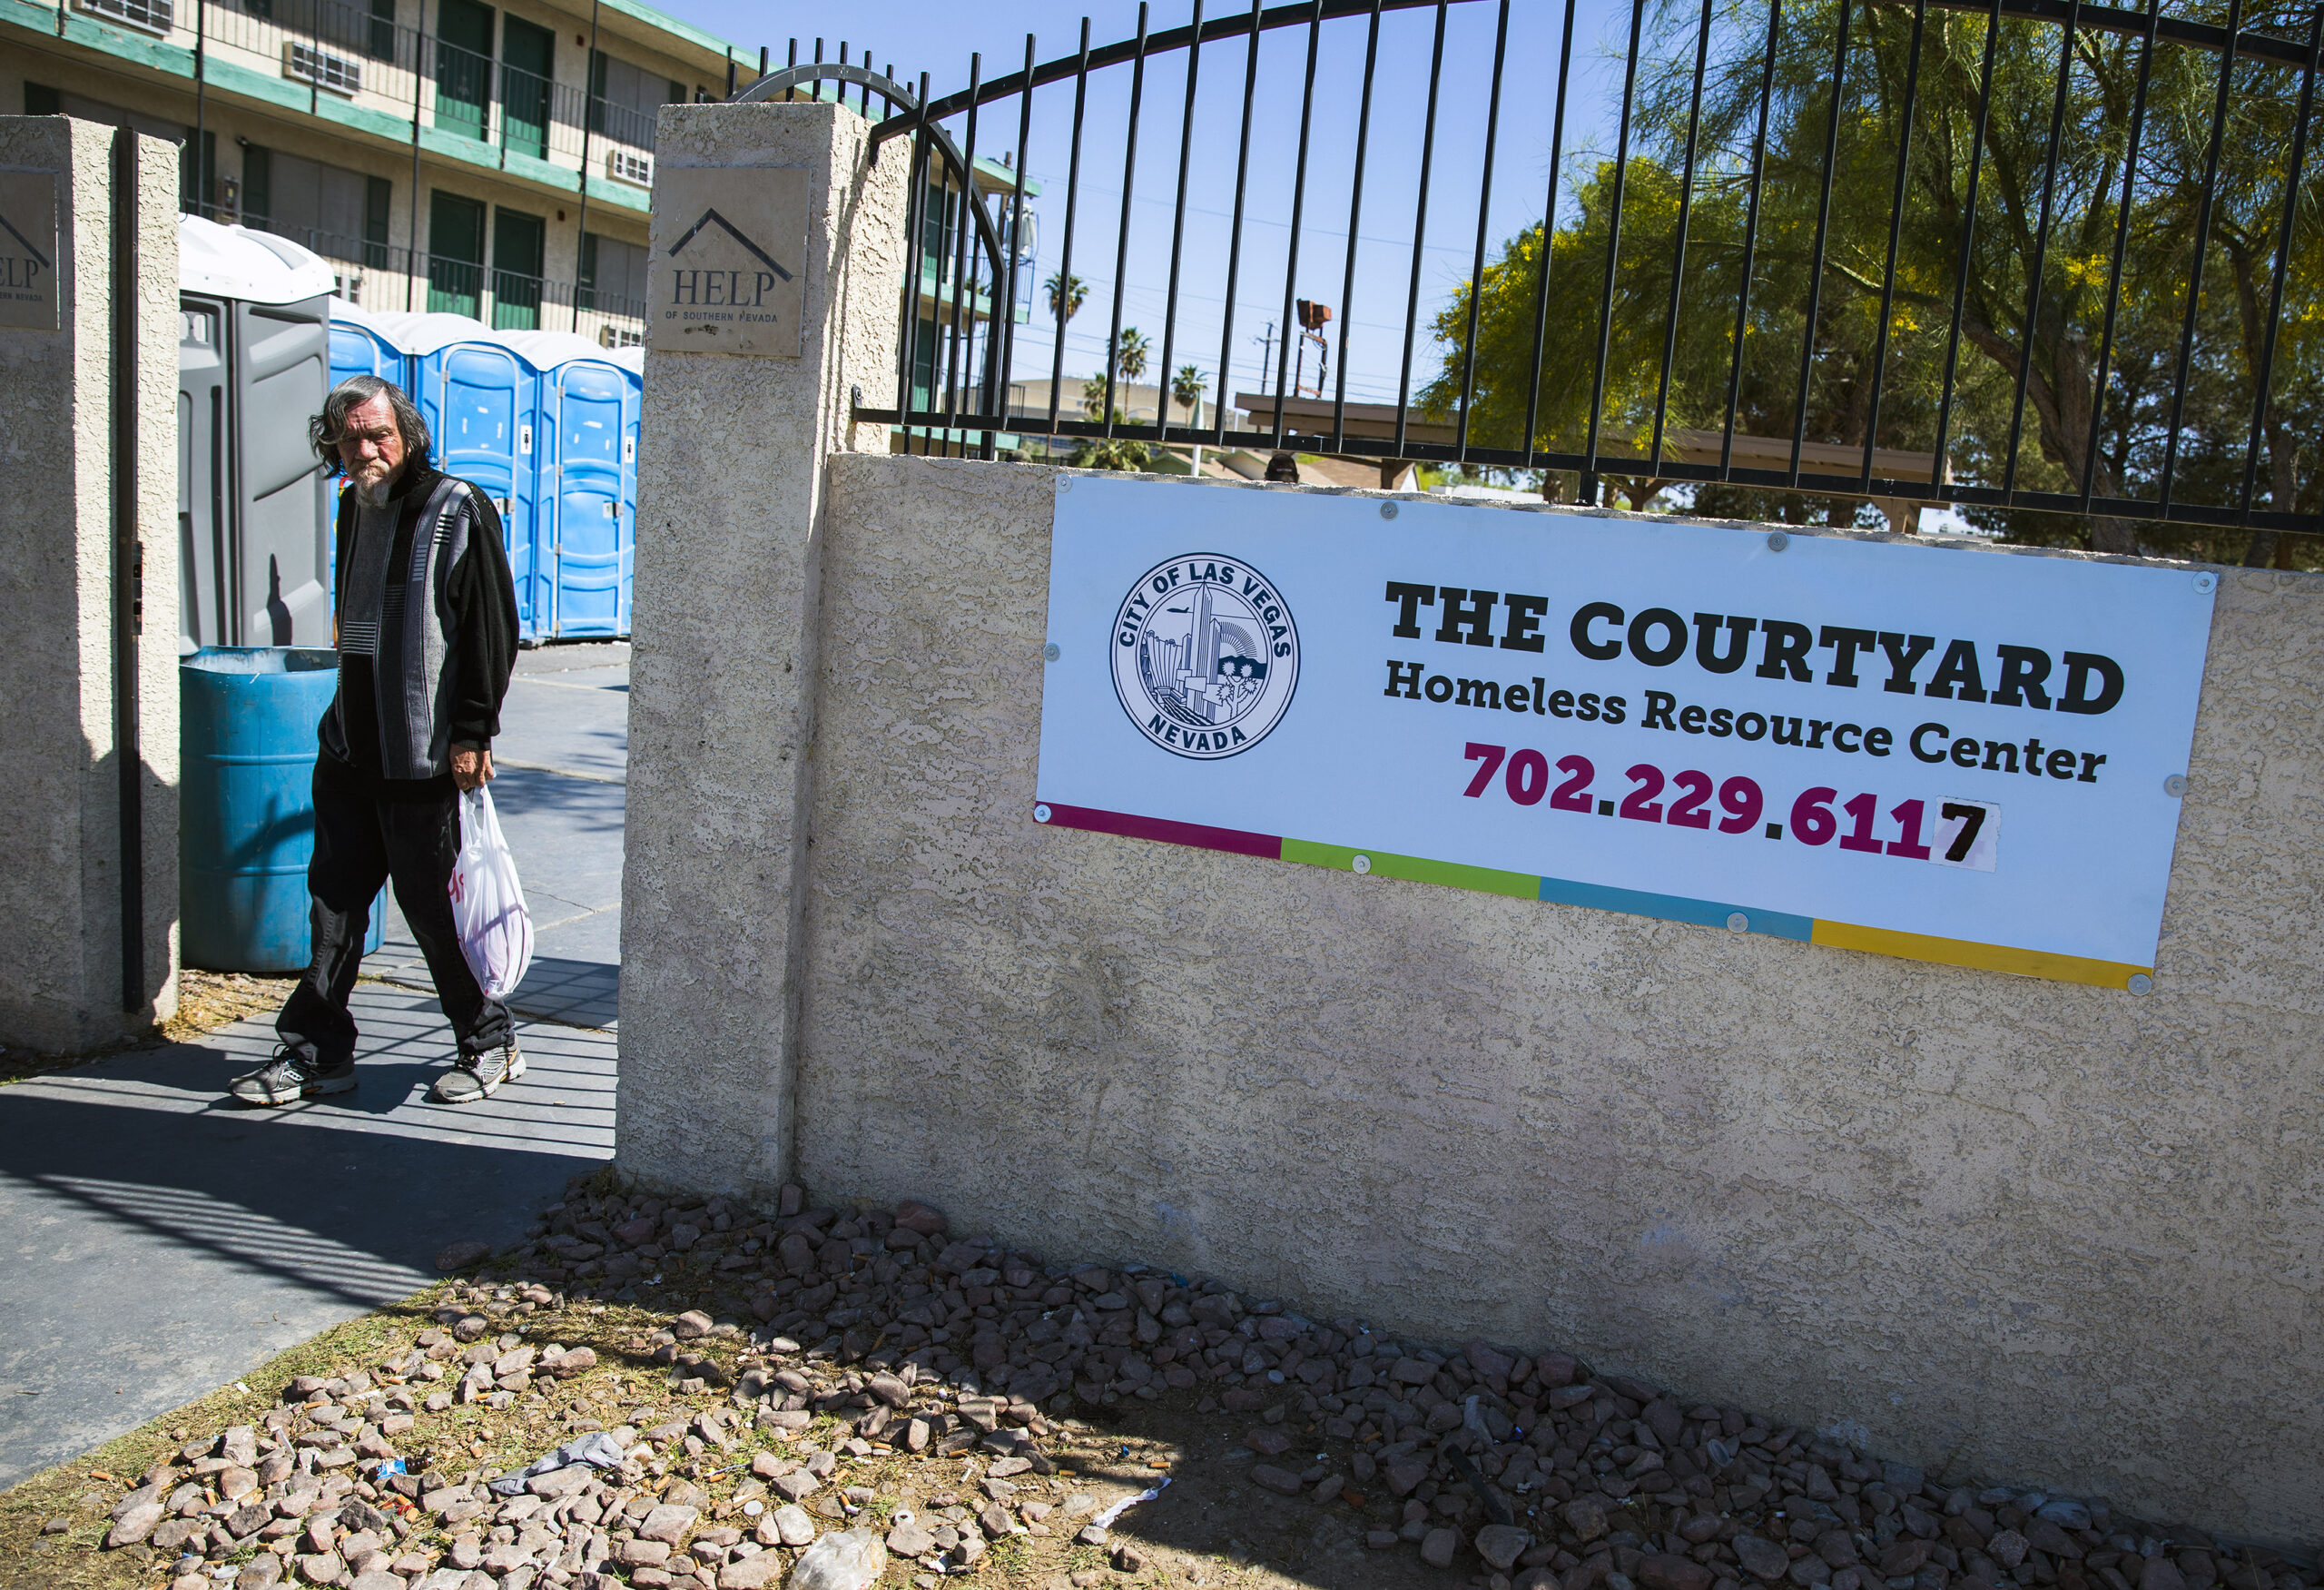 The Courtyard, a city of Las Vegas shelter for homeless people